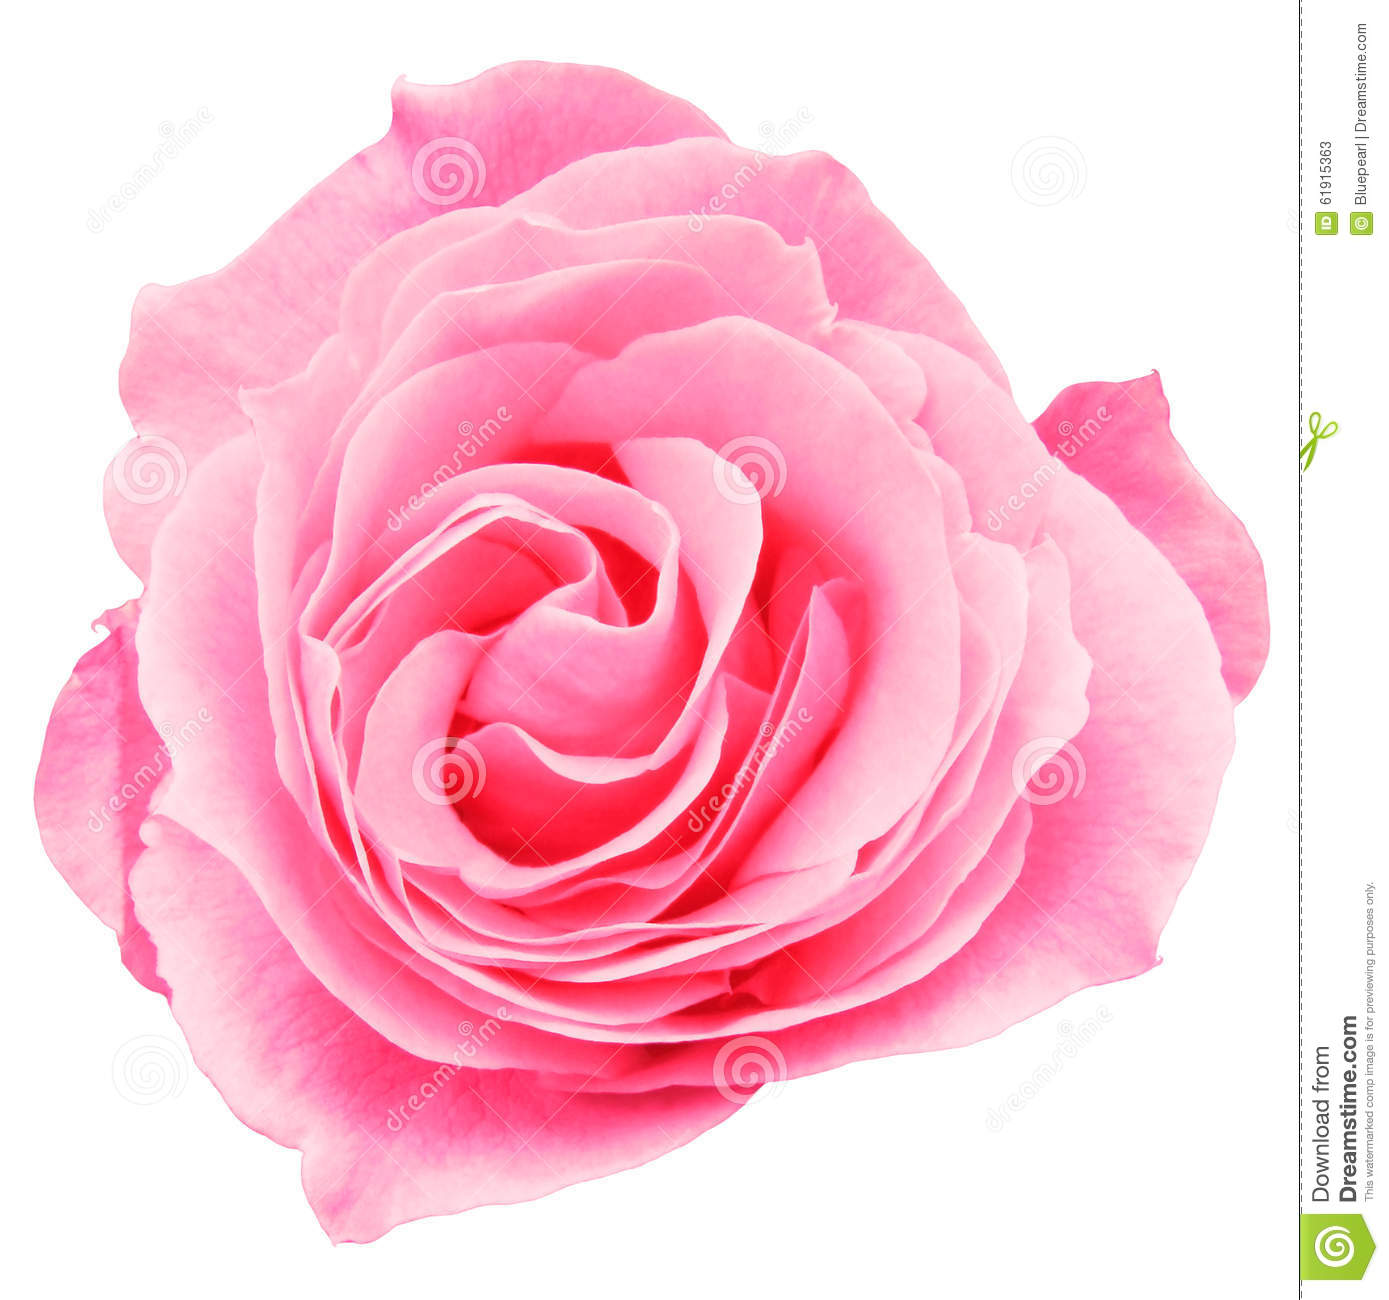 swirly roses background bouquet - photo #11